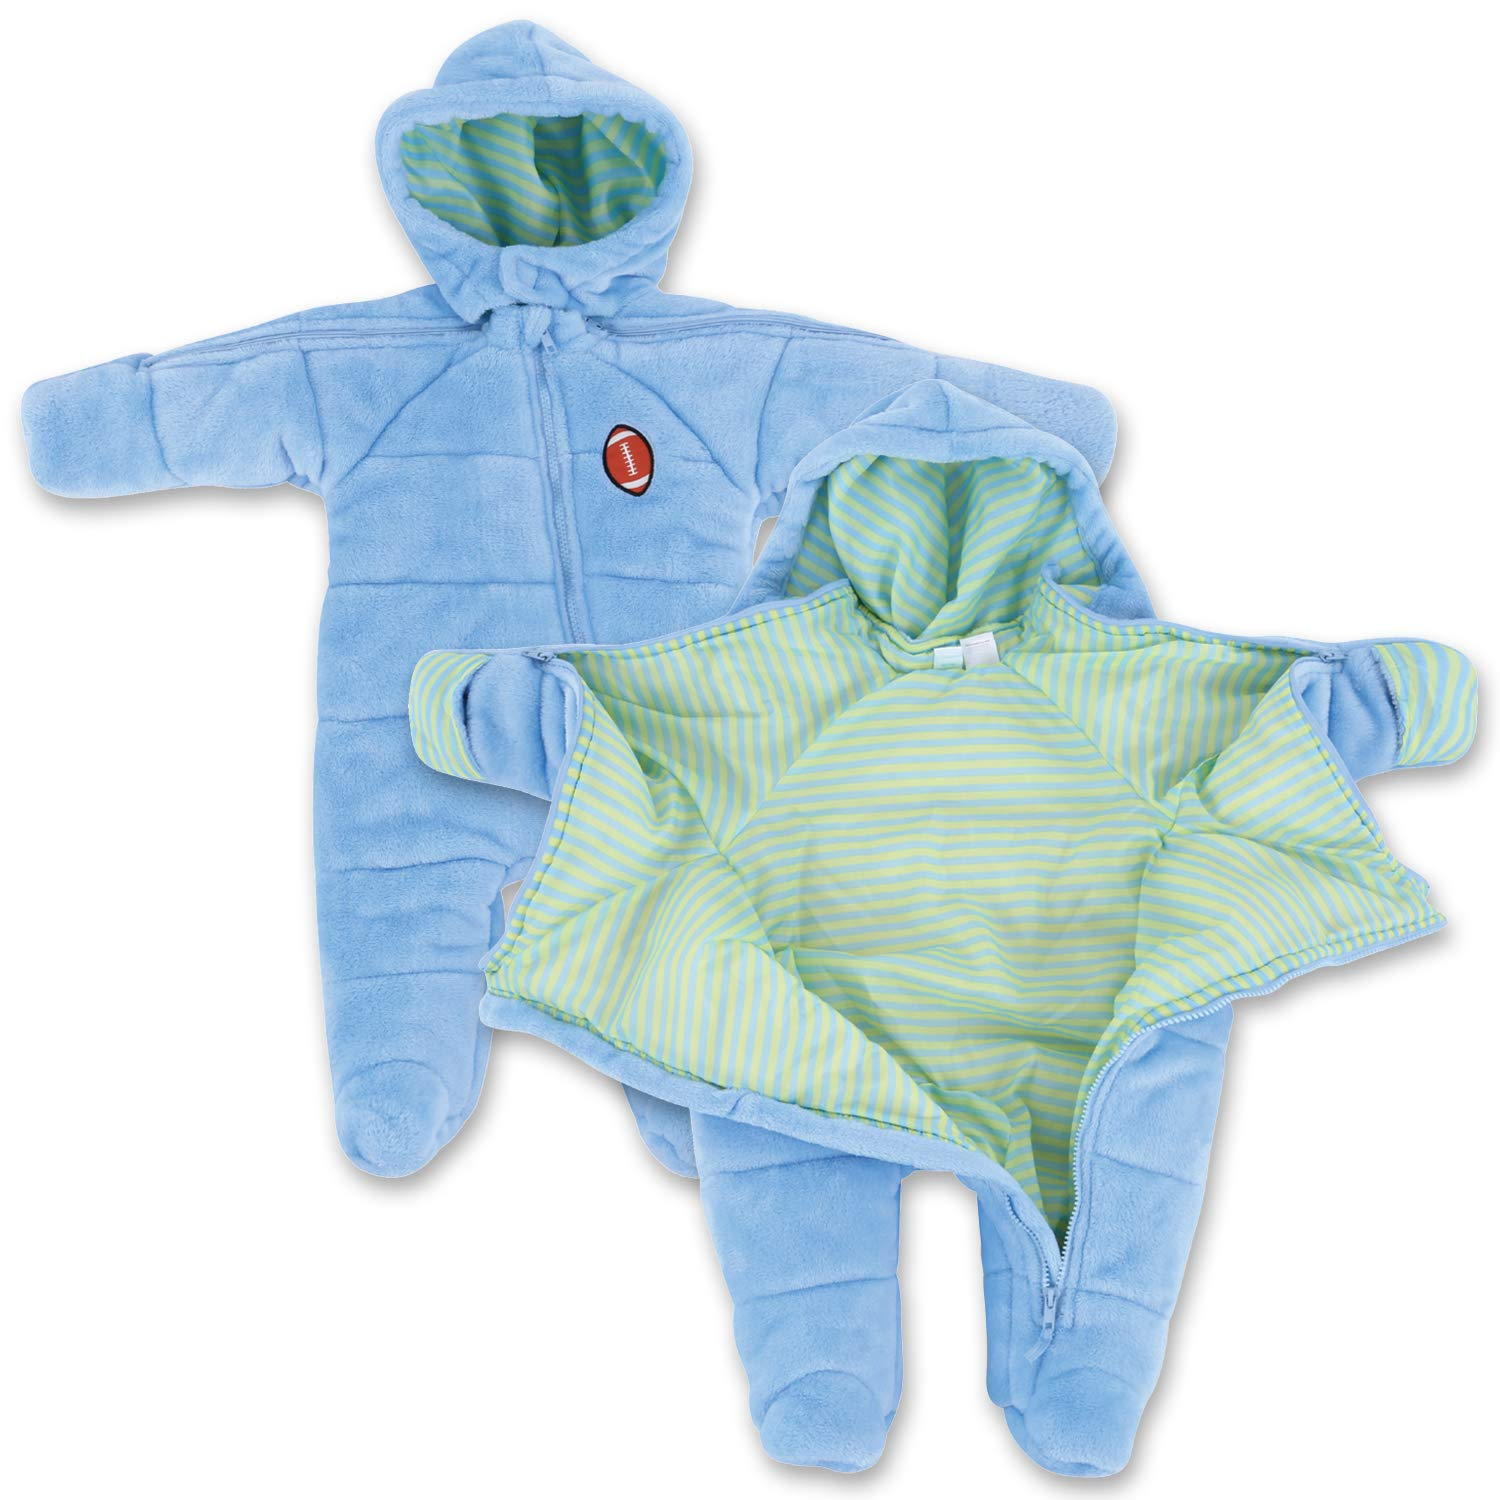 Infant Boy EZ Off Full Zip Hooded Warm Jacket - Great for Sleeping Children - Perfect Baby Gift